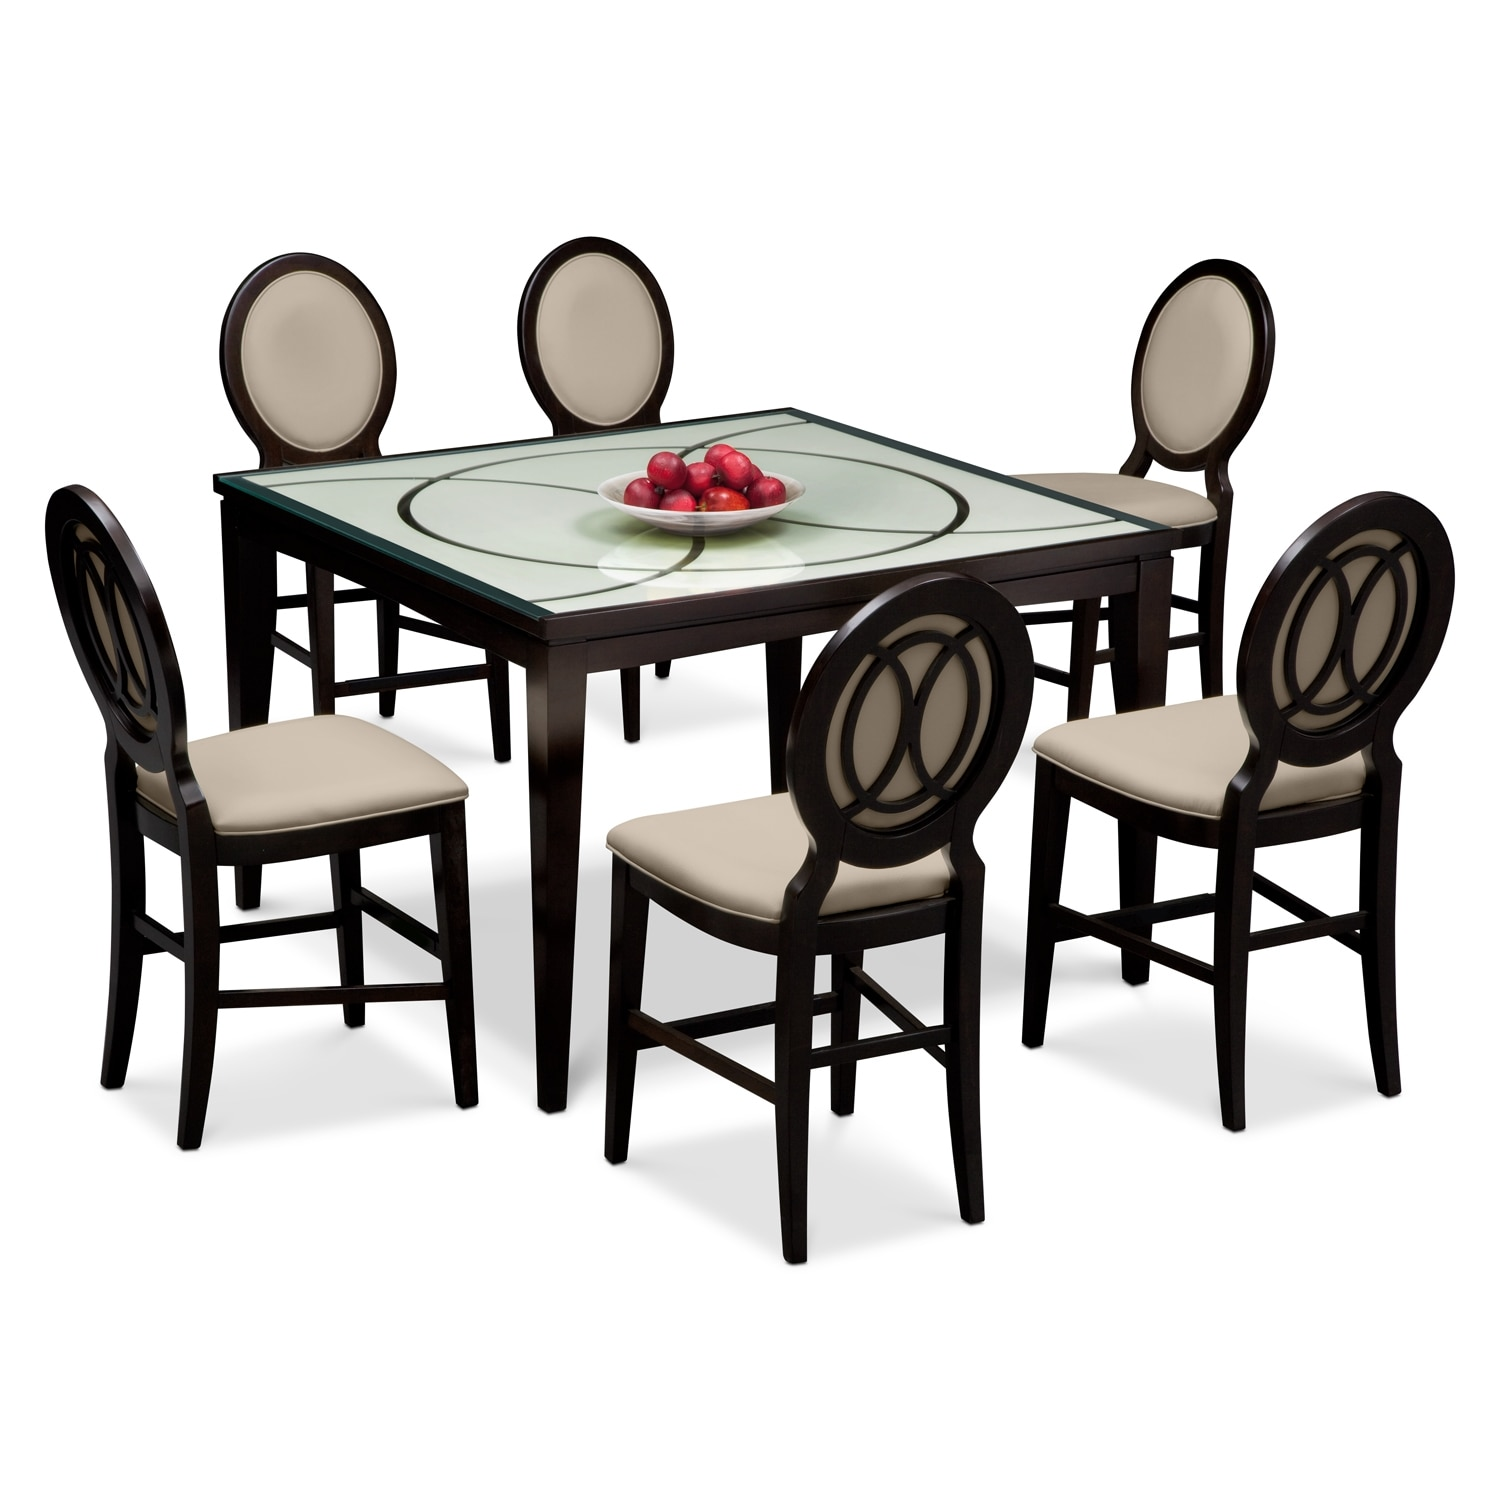 2f0393cfee ... Dining Room Furniture - Cosmo Counter-Height Table and 6 Chairs - Merlot